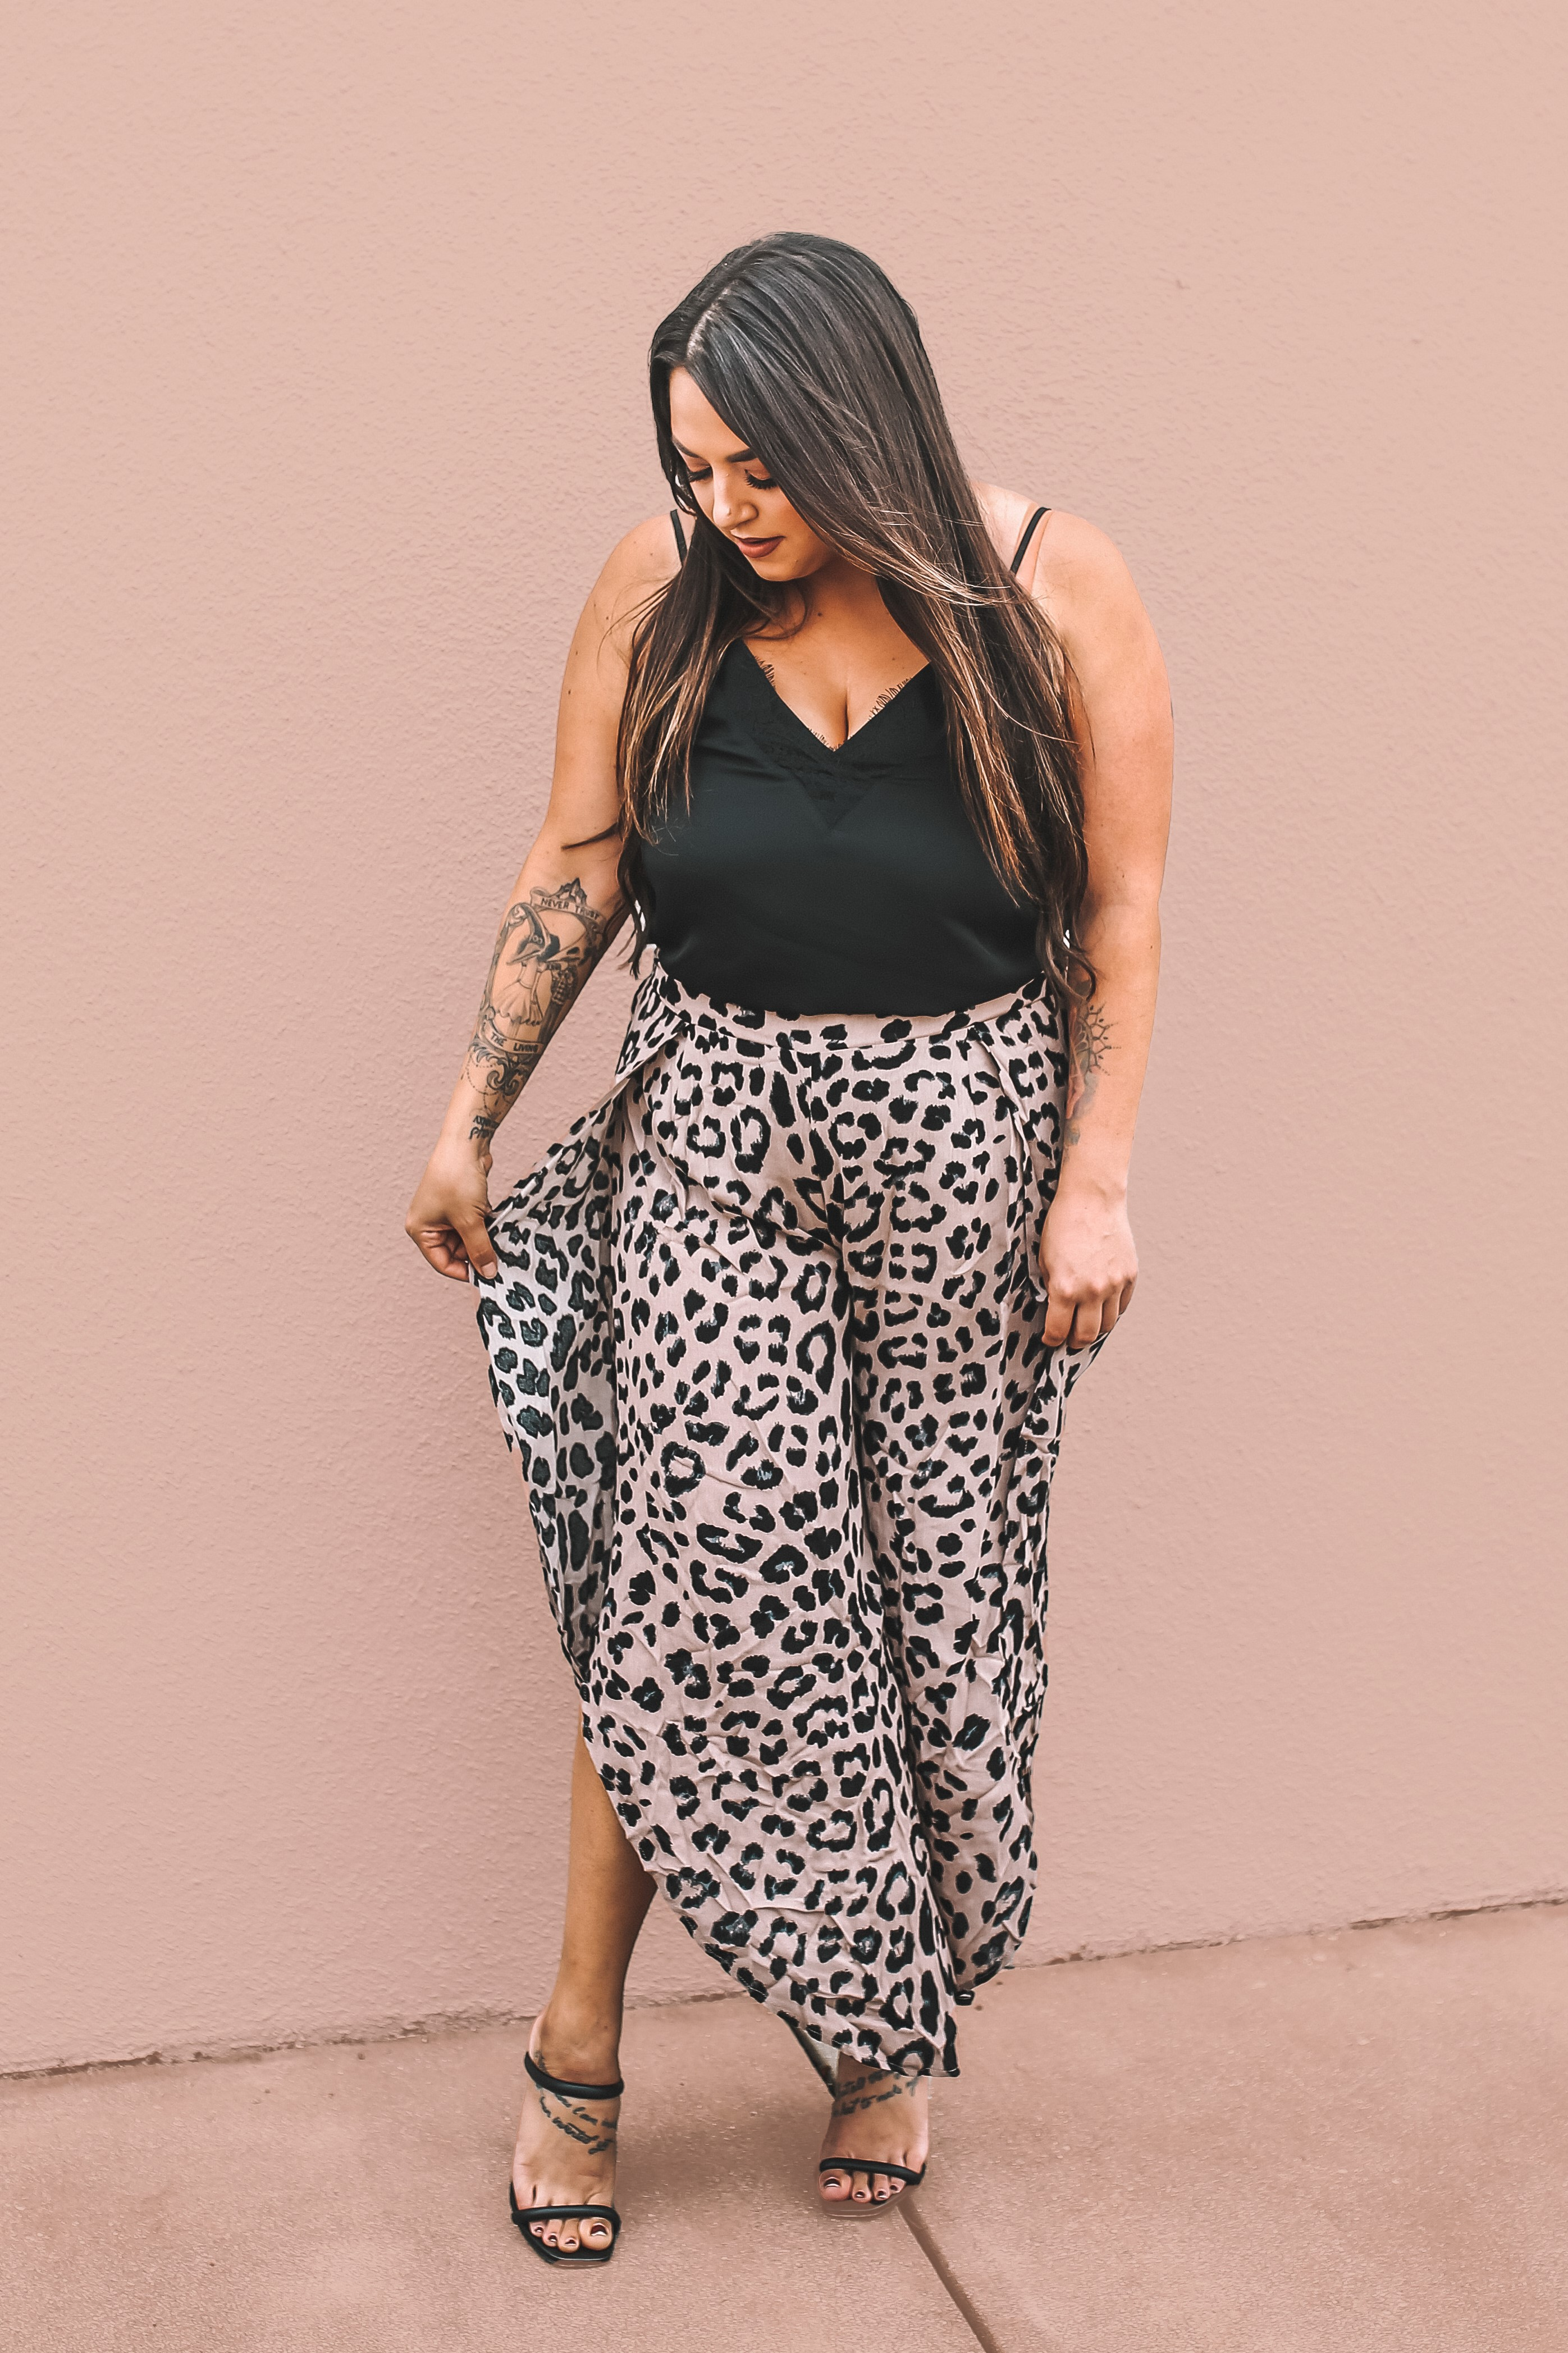 """MAVERICK EXCLUSIVE! WIDE LEG LEOPARD PANTS, WITH SLITS AT SIDES. EXTRA FABRIC ADDED TO ENSURE NO OPENINGS AT TOP OF LEG. 27in. INSEAM AT LONGEST POINT. 100% RAYON. AMANDA IS 5'7 SIZE 2, WEARING SMALL. GABBY IS 5'8"""" A SIZE 12 WEARING AN X LARGE."""